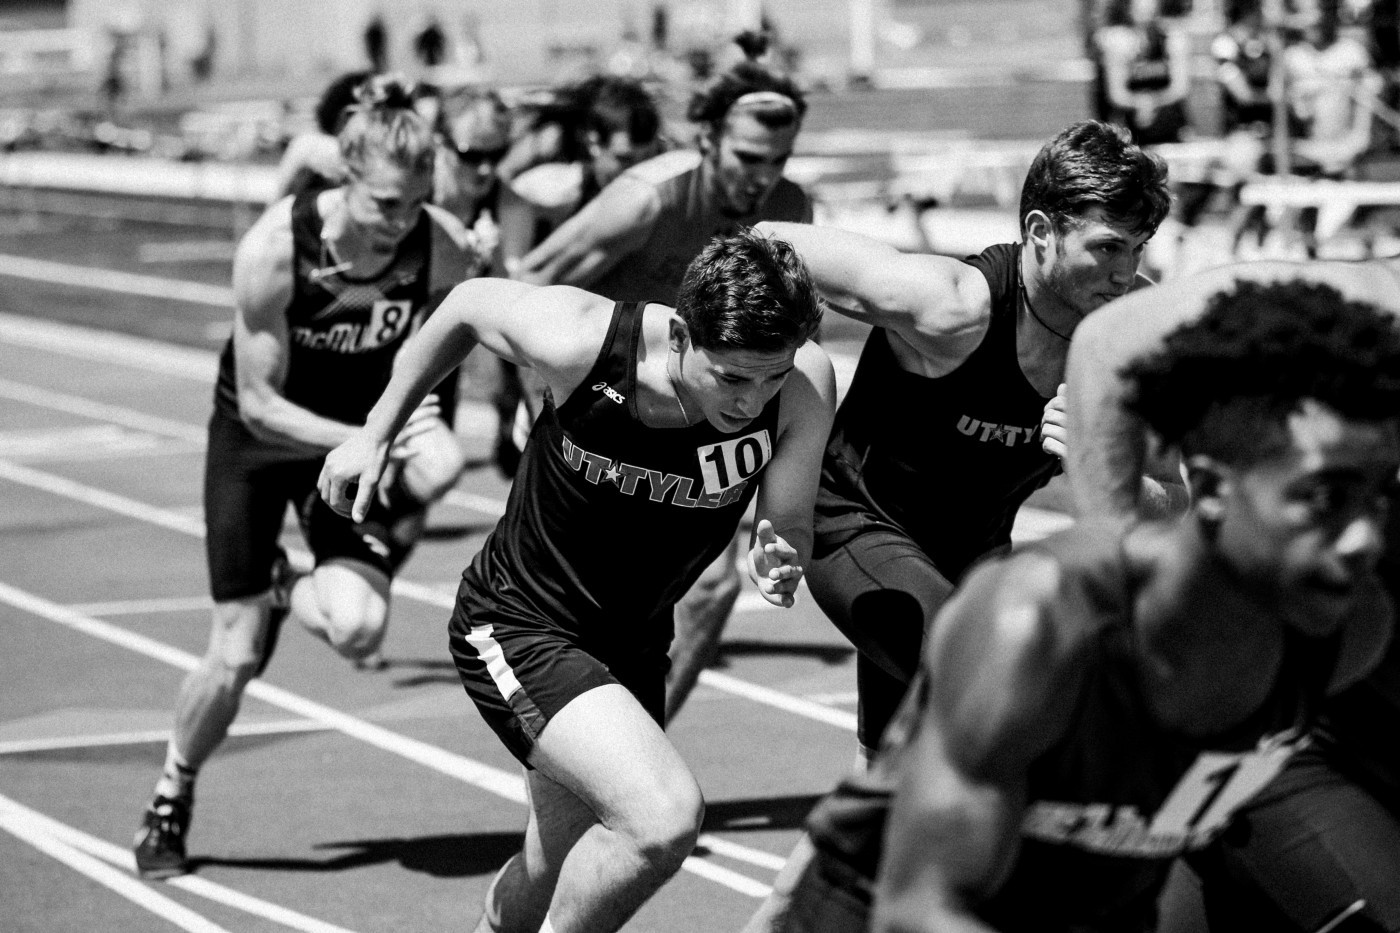 Black and white picture of runners on track